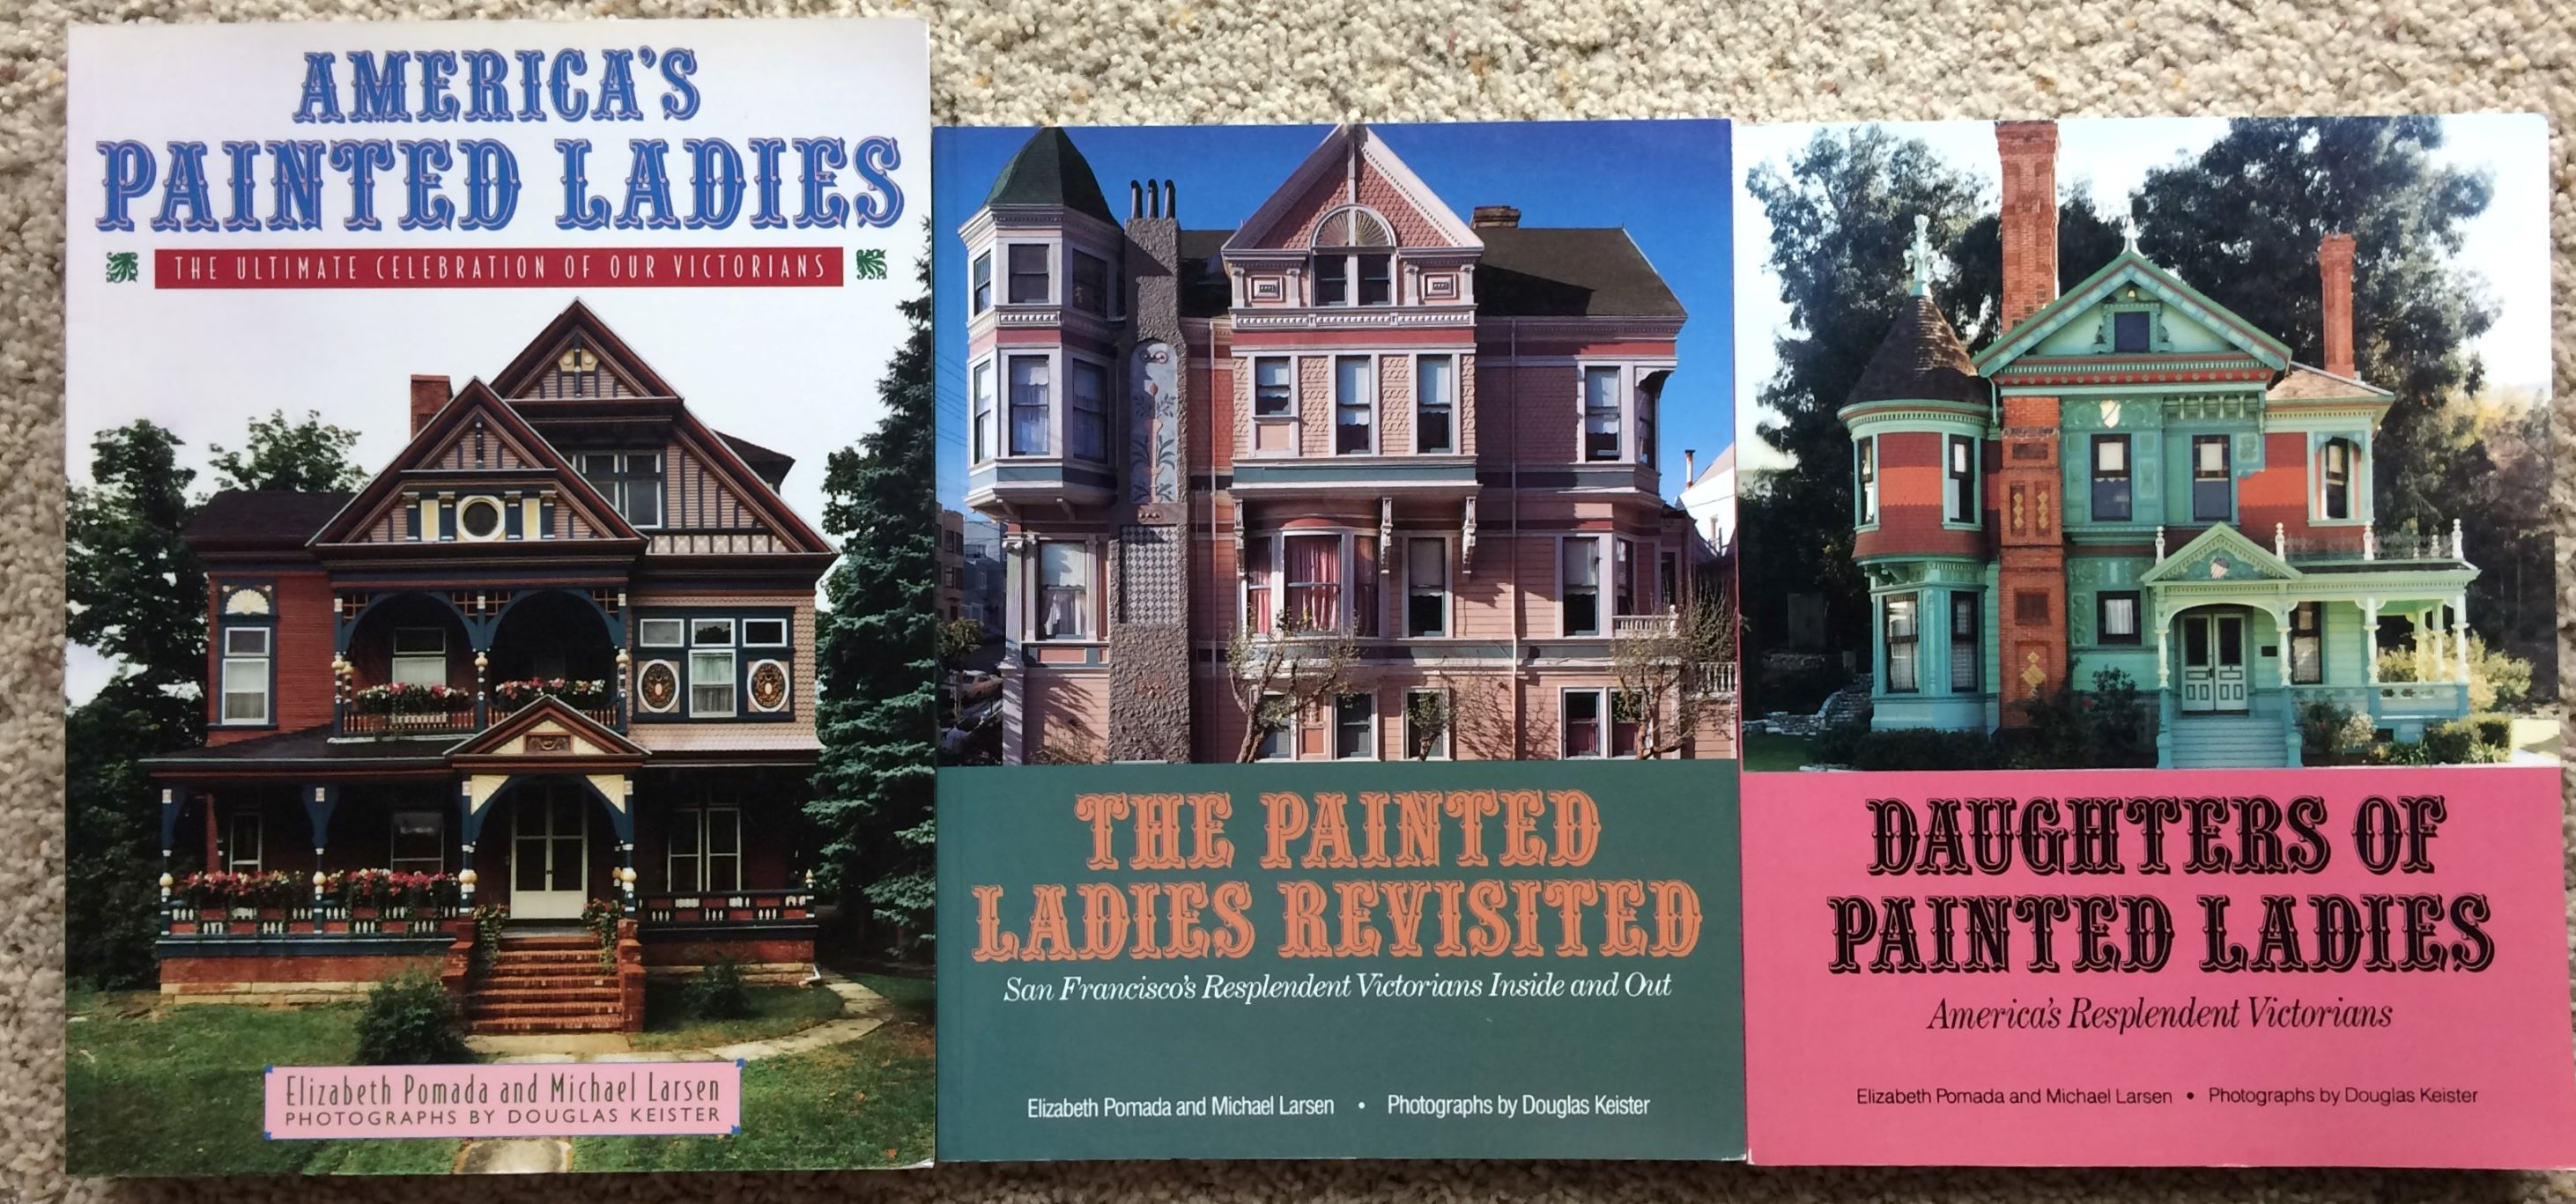 Image for (3 Titles) America's Painted Ladies, The Ultimate Celebration of Our Victorians; Daugters of Painted Ladies; The Painted Ladies Revisited.  Photographs by Douglas Keister.